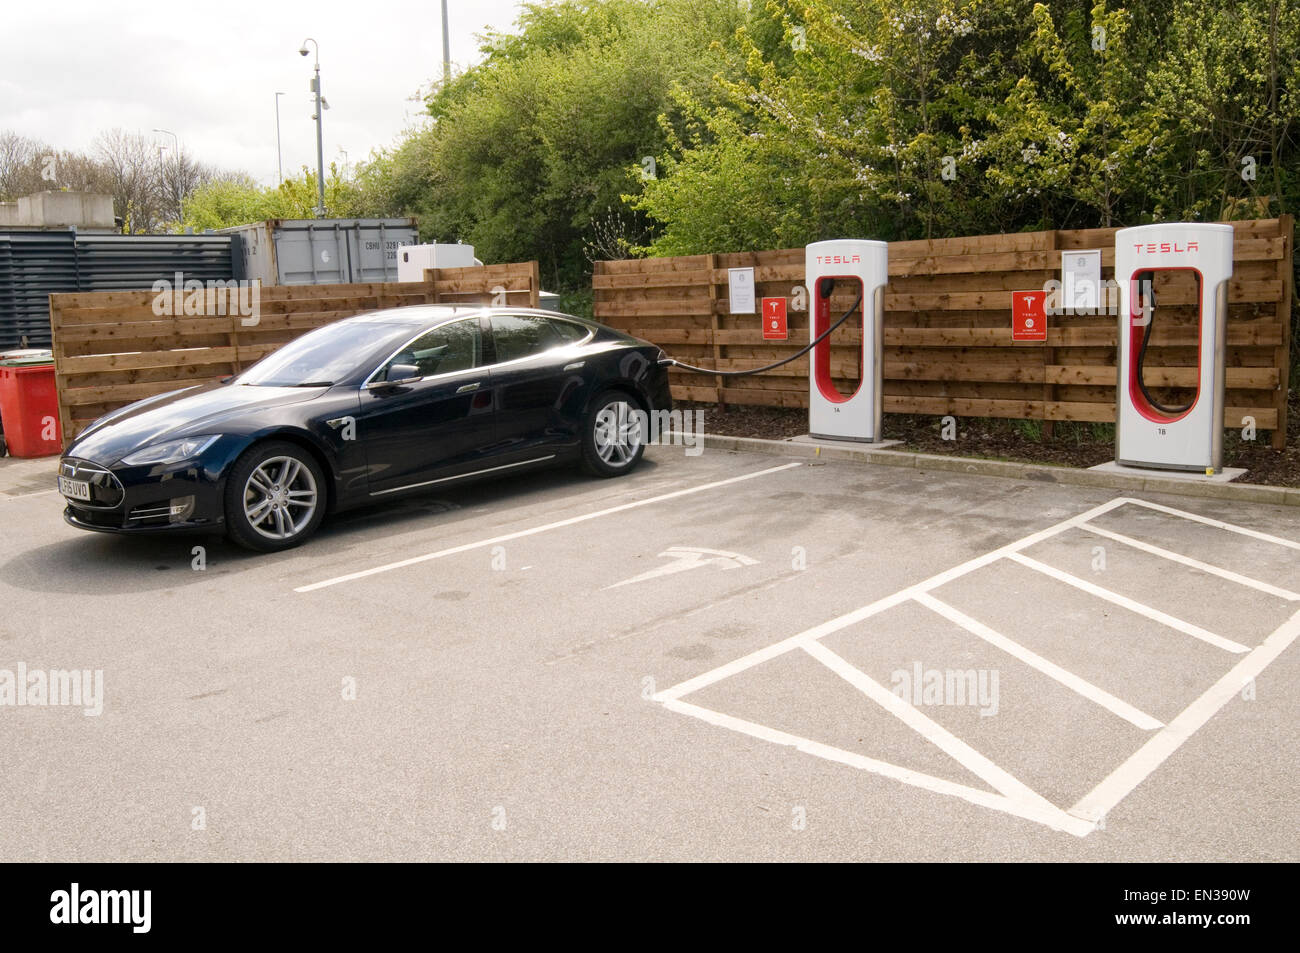 tesla electric car cars supercharger plugged in charging up on the m62 in leeds - Stock Image